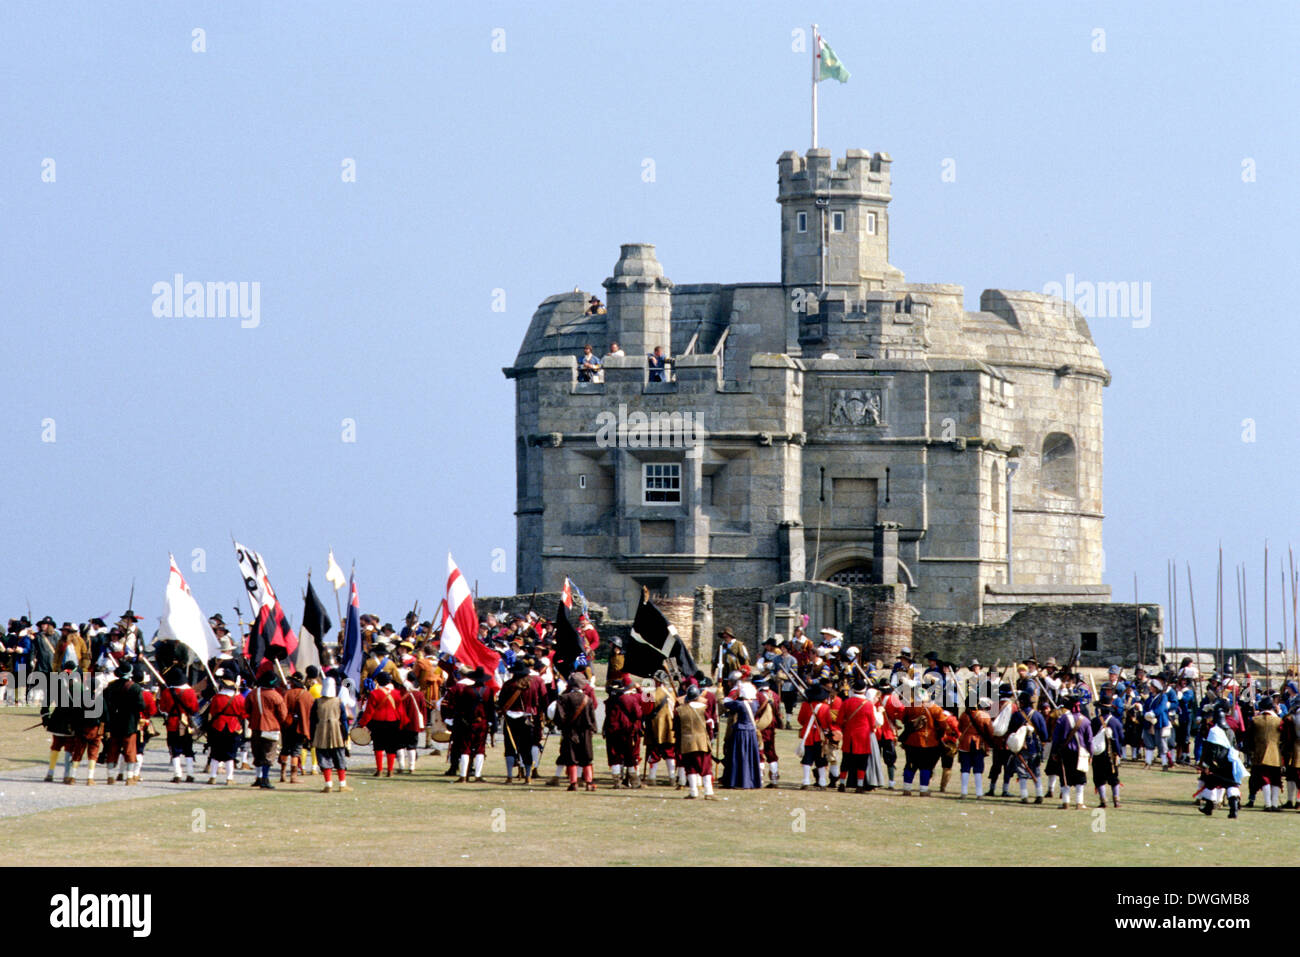 English Civil War siege at Pendennis Castle, 17th century, historical re-enactment soldier soldiers Cornwall, England UK cavalry - Stock Image